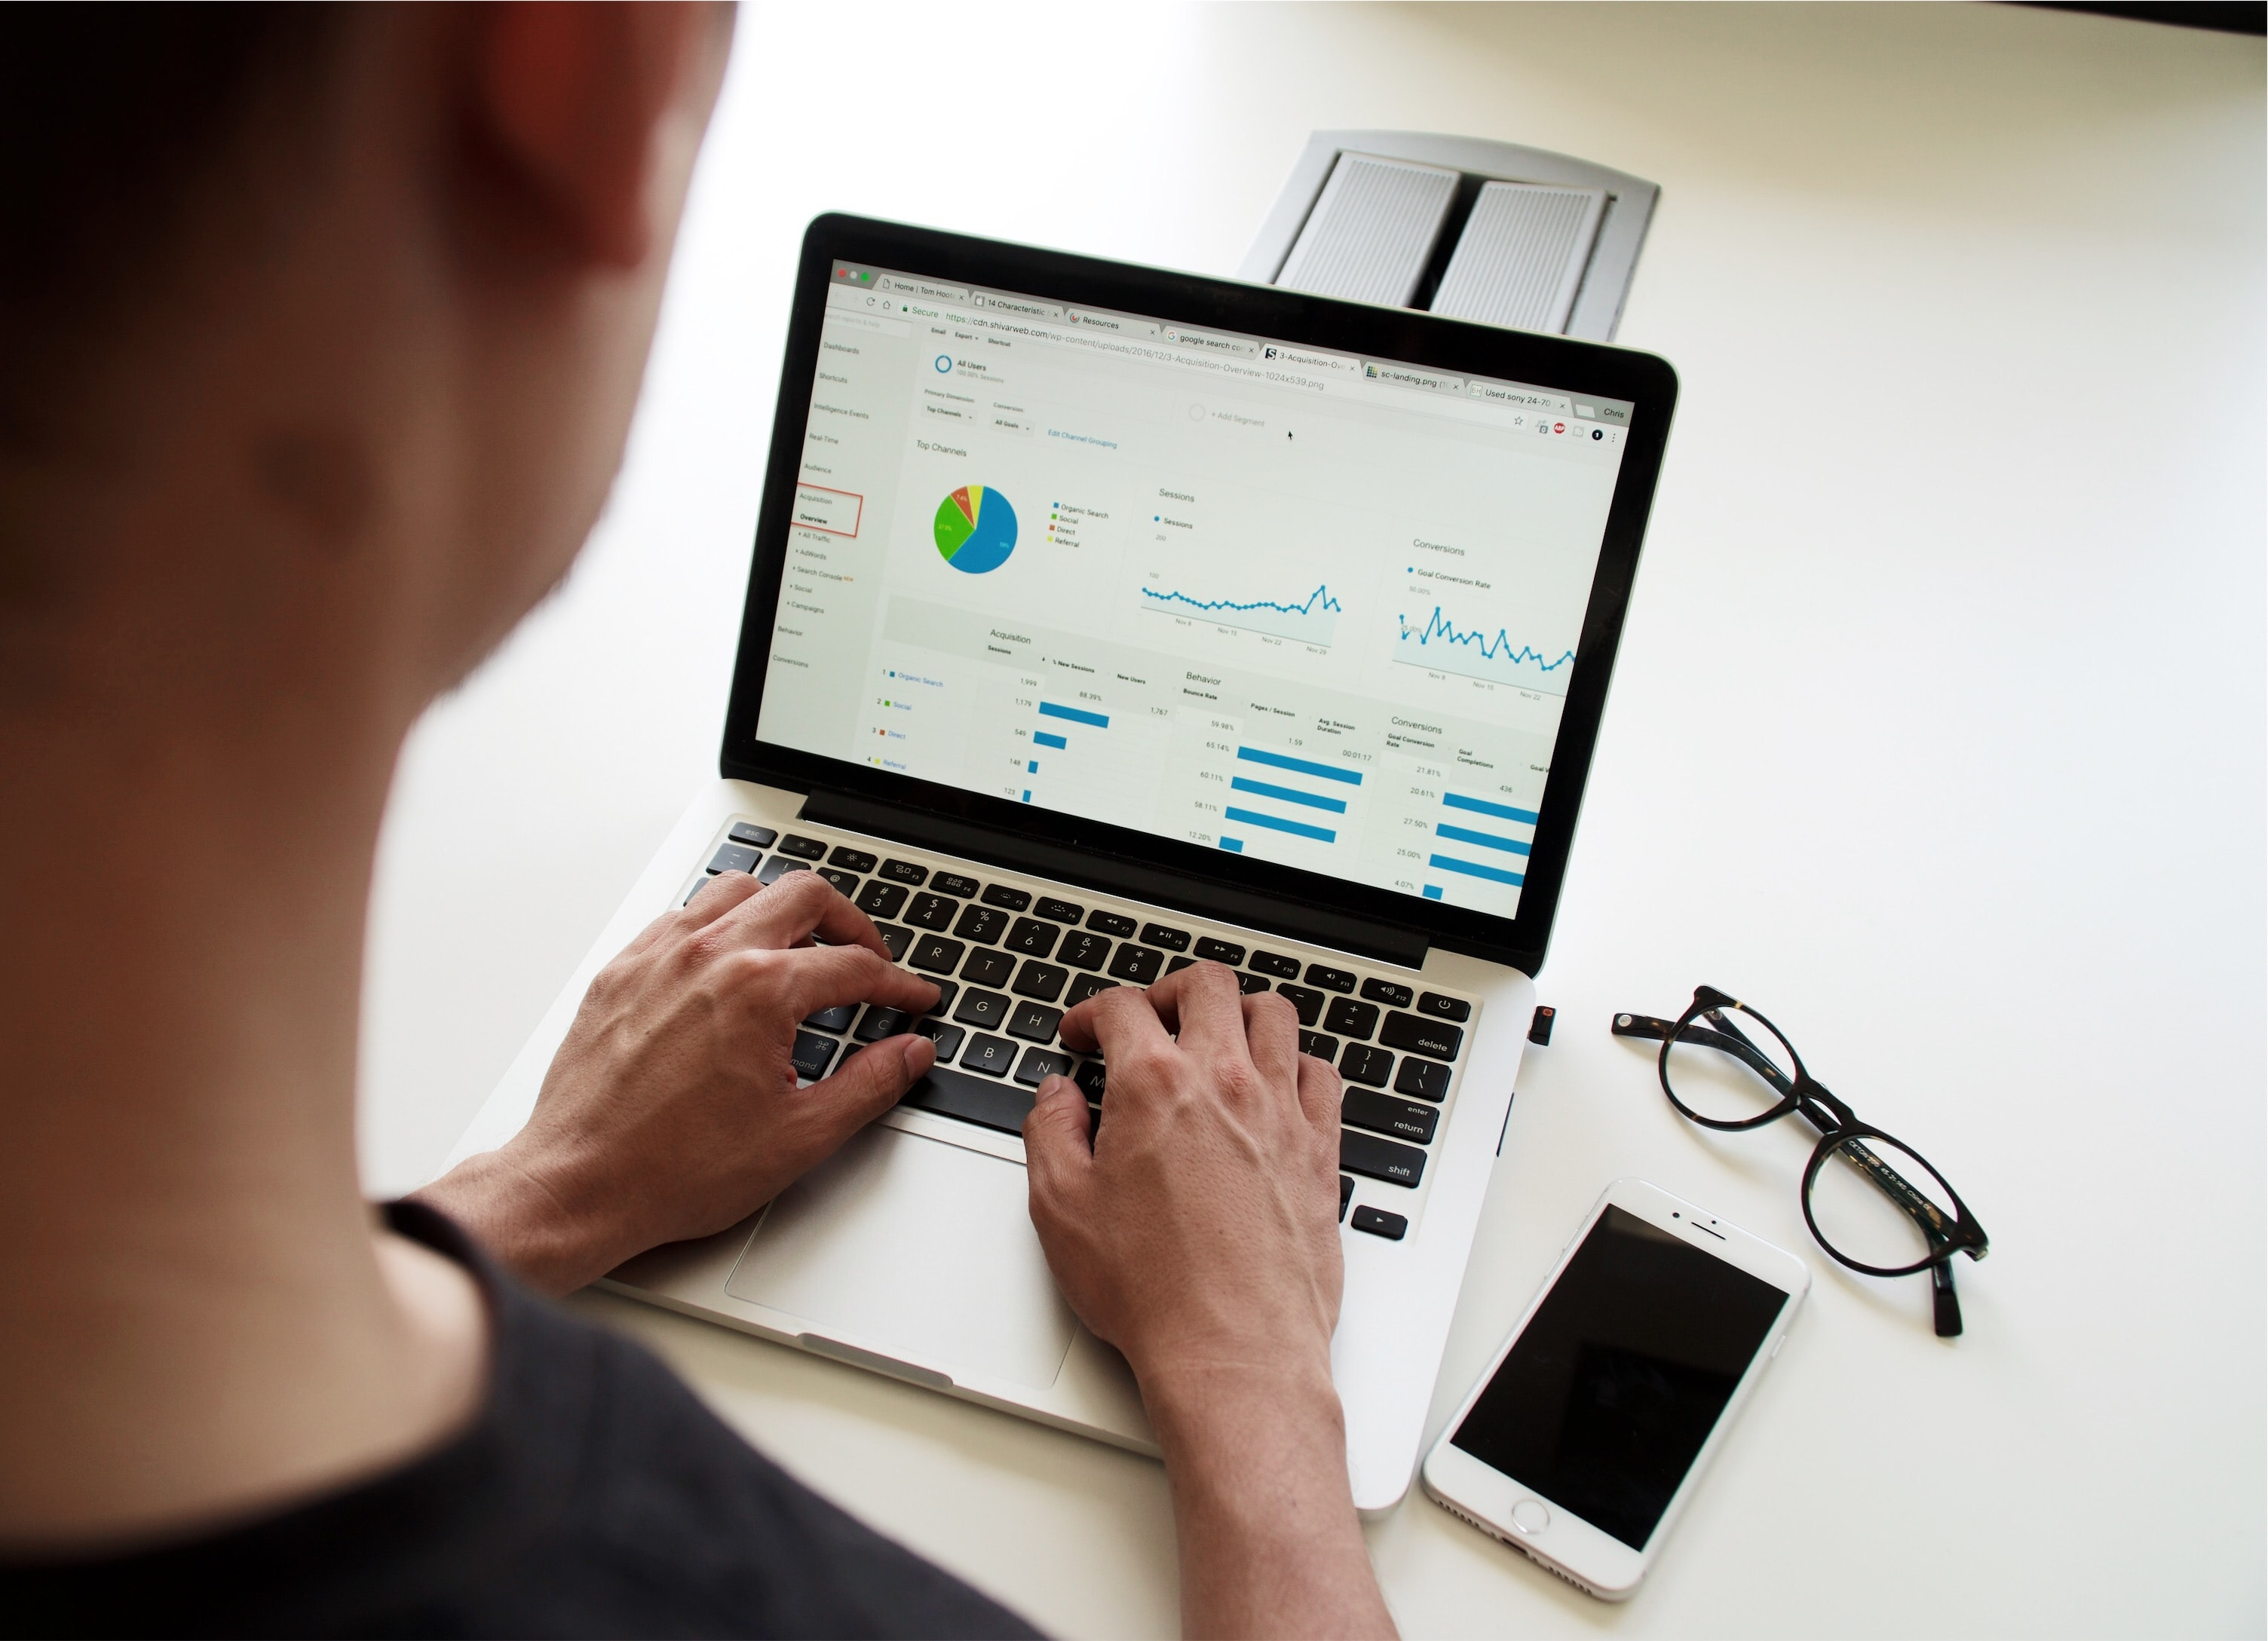 Business owner using macbook pro laptop to look up website analytics using Google Analytics for SEO and organic growth statistics.